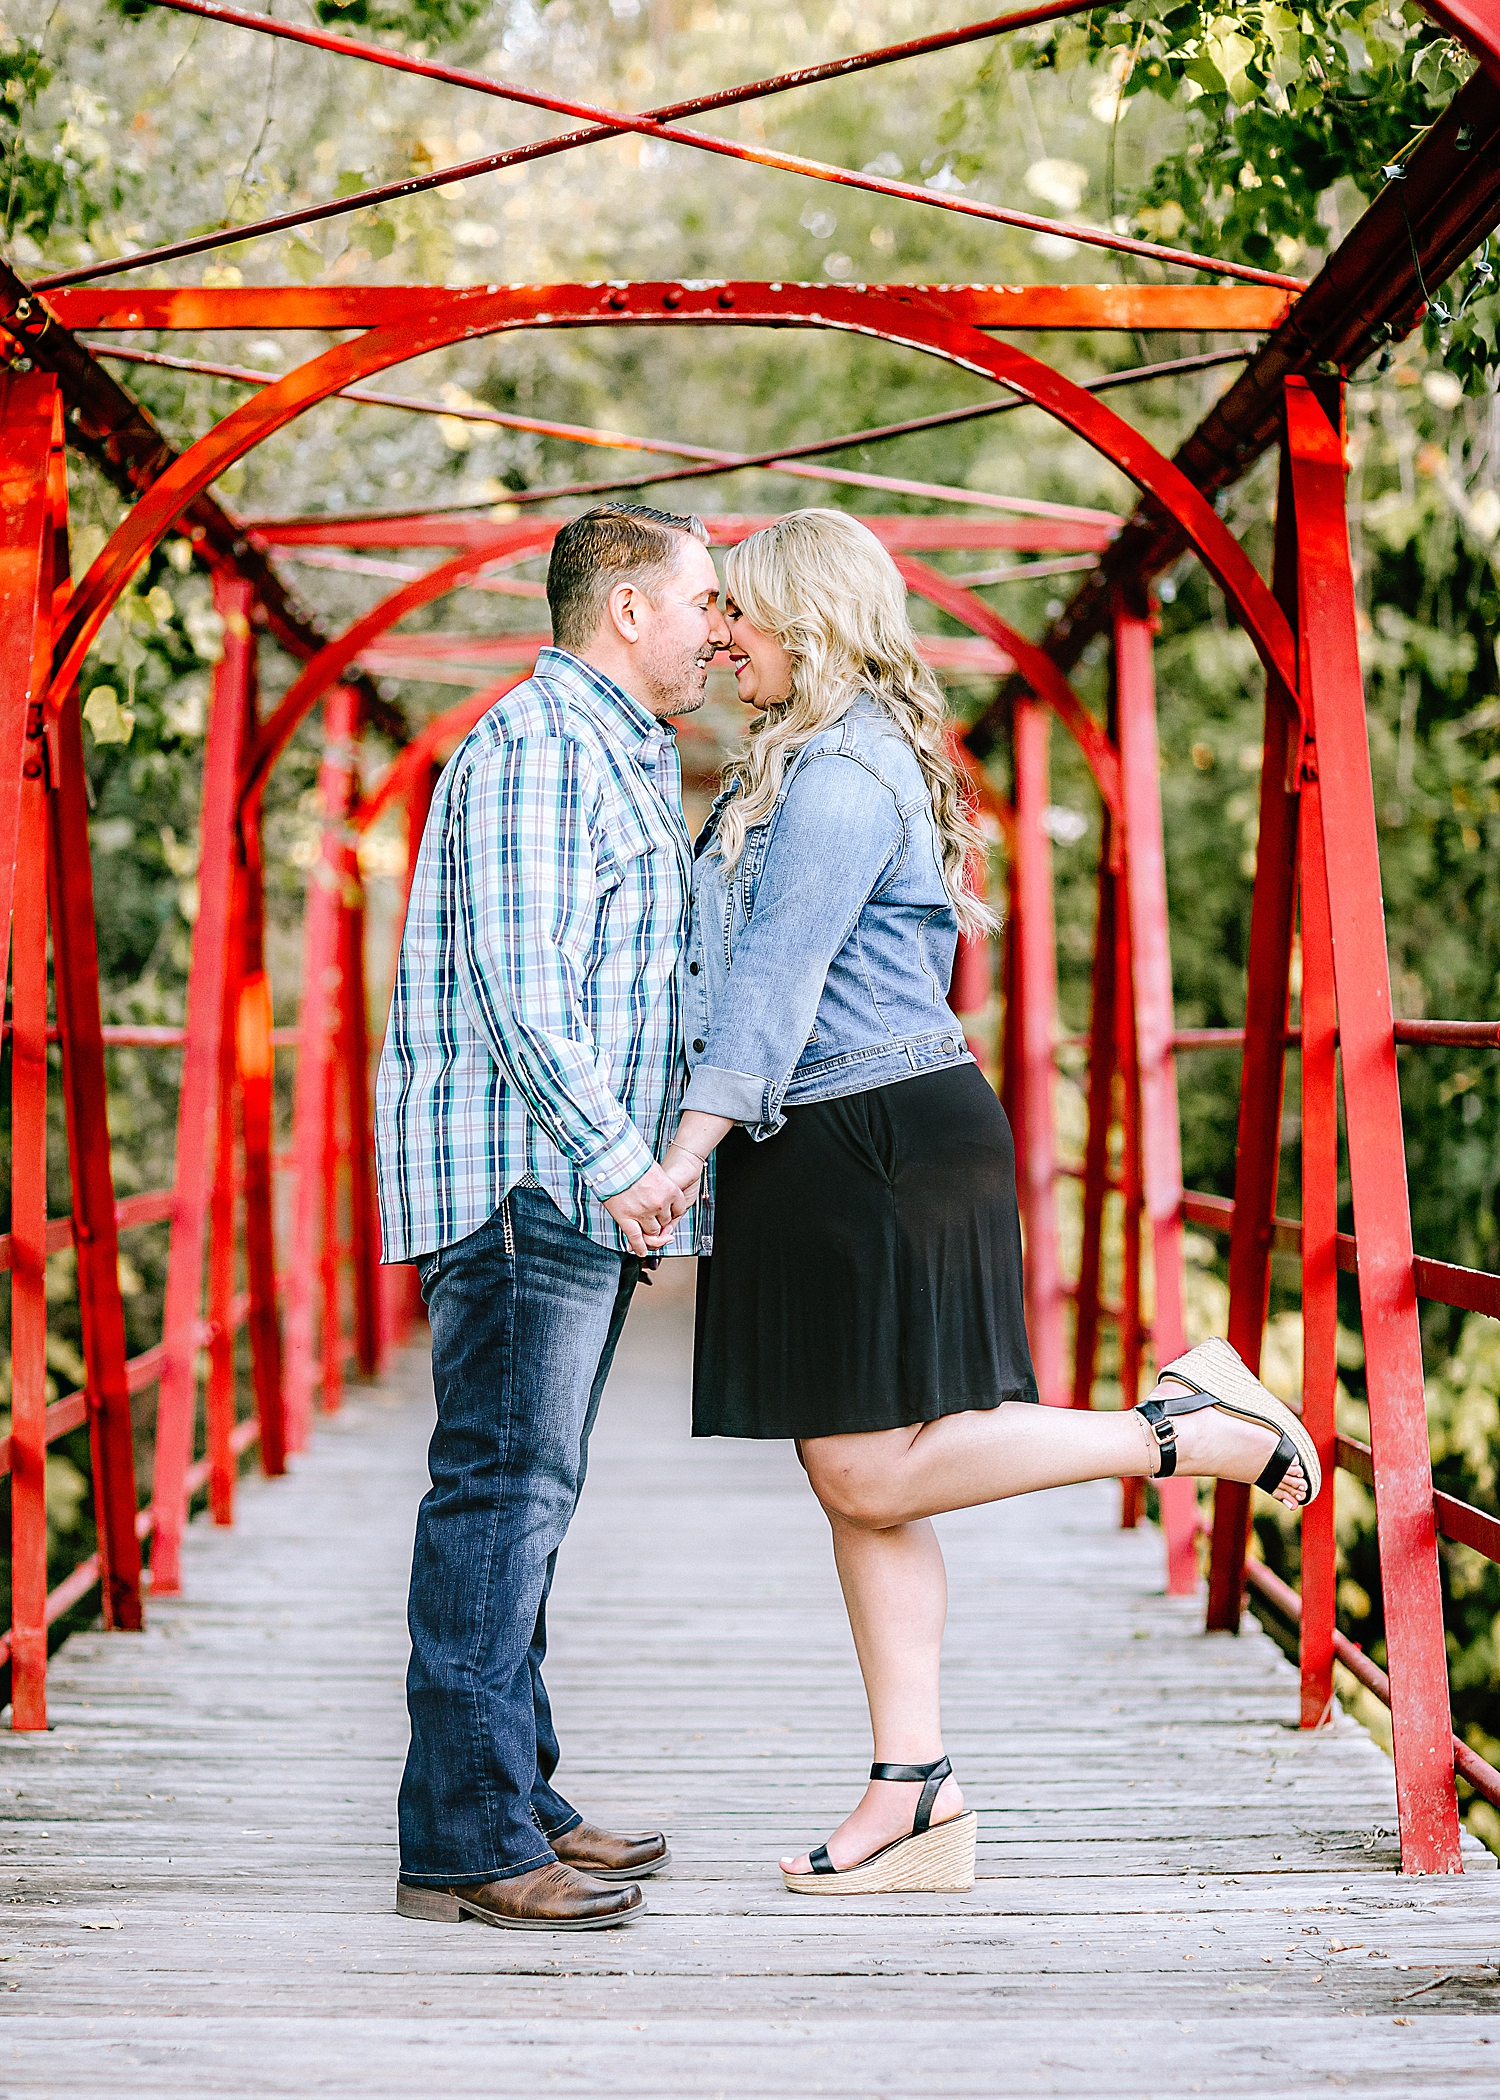 Engagement-Photo-Session-University-of-Incarnate-Word-UIW-San-Antonio-Texas-Carly-Barton-Photography_0003.jpg